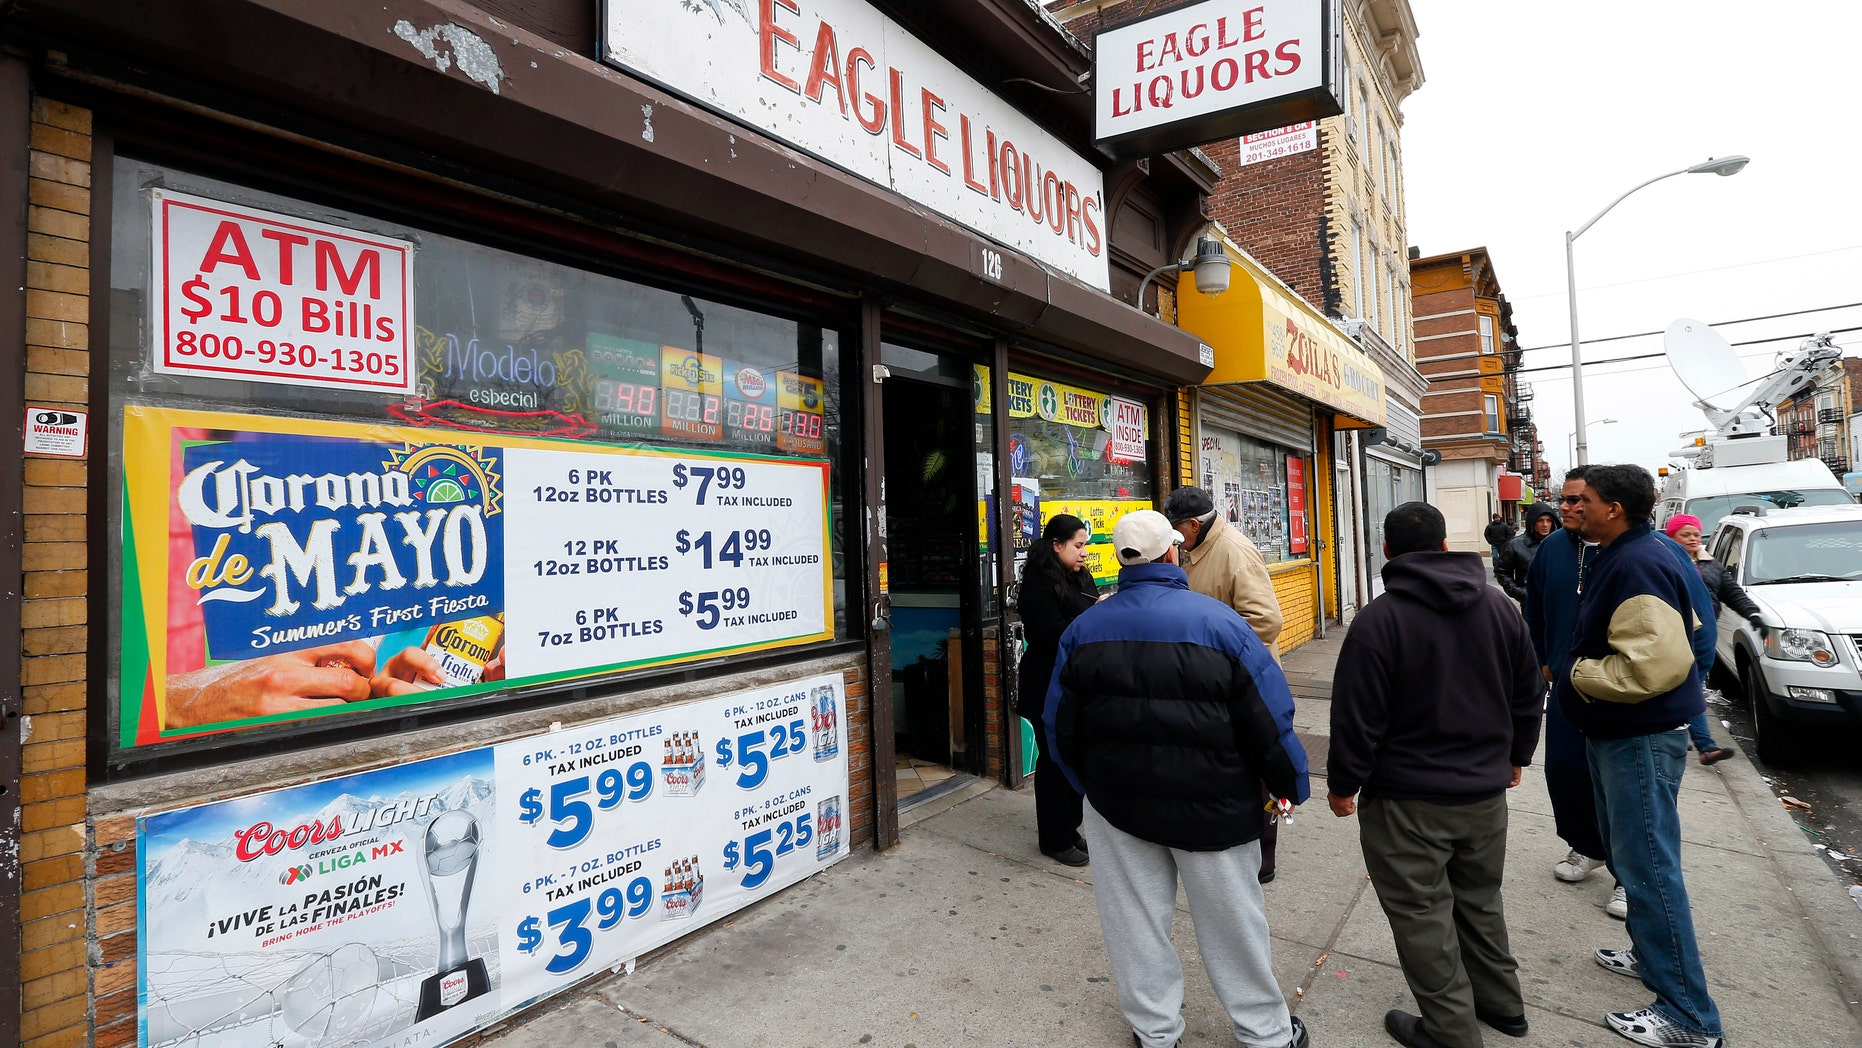 March 25, 2013: Crowds stand outside Eagles Liquors in Passaic, N.J. The store sold the winning $338 million Powerball ticket that was claimed by a New Jersey resident later identified as 44-year-old Pedro Quezada. (AP)